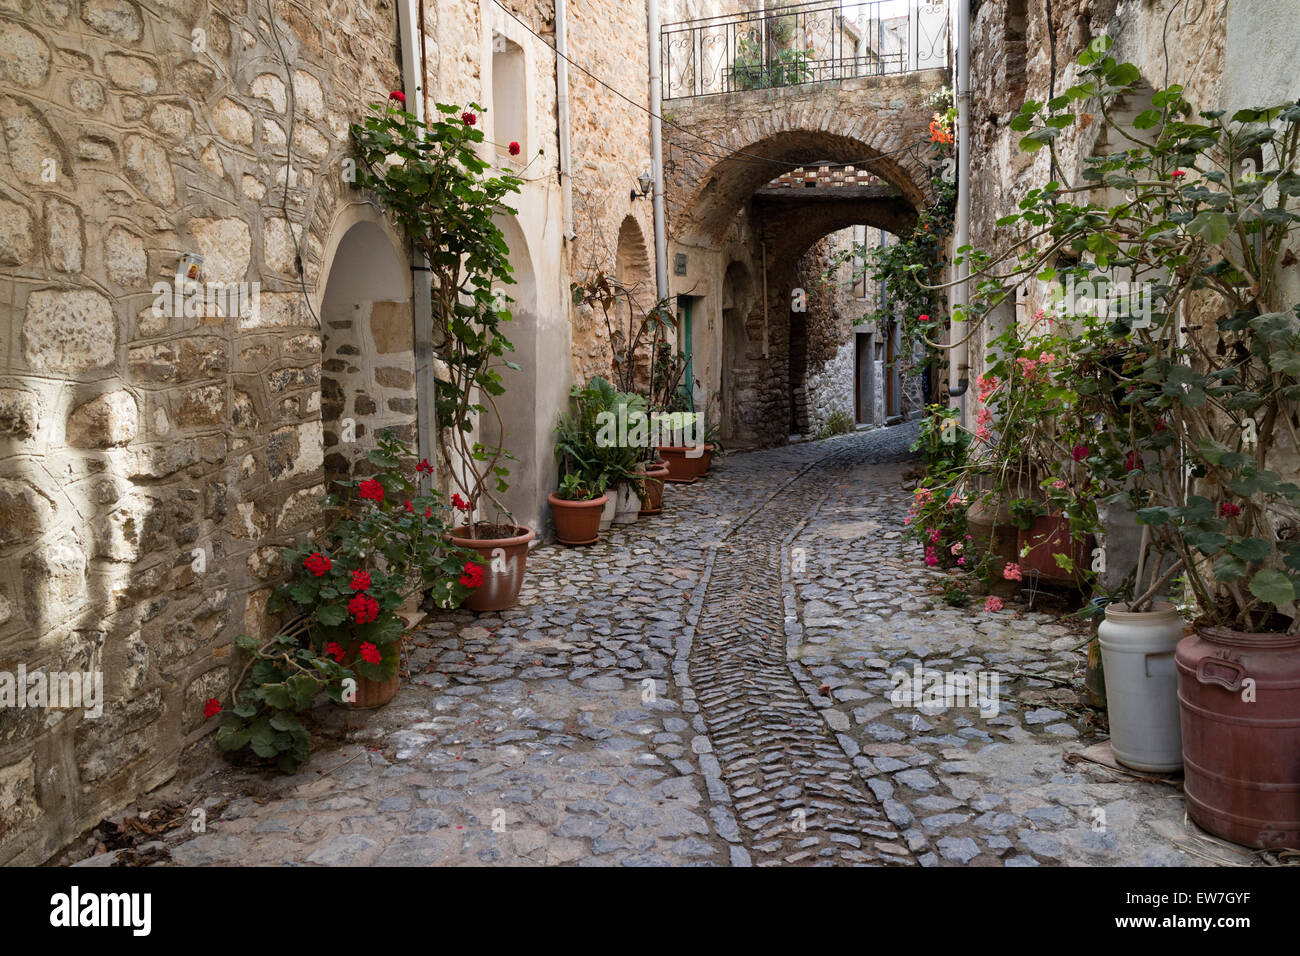 Small alley with bows and flowers in the medieval village of Mesta, on the isle of Chios, Greece - Stock Image